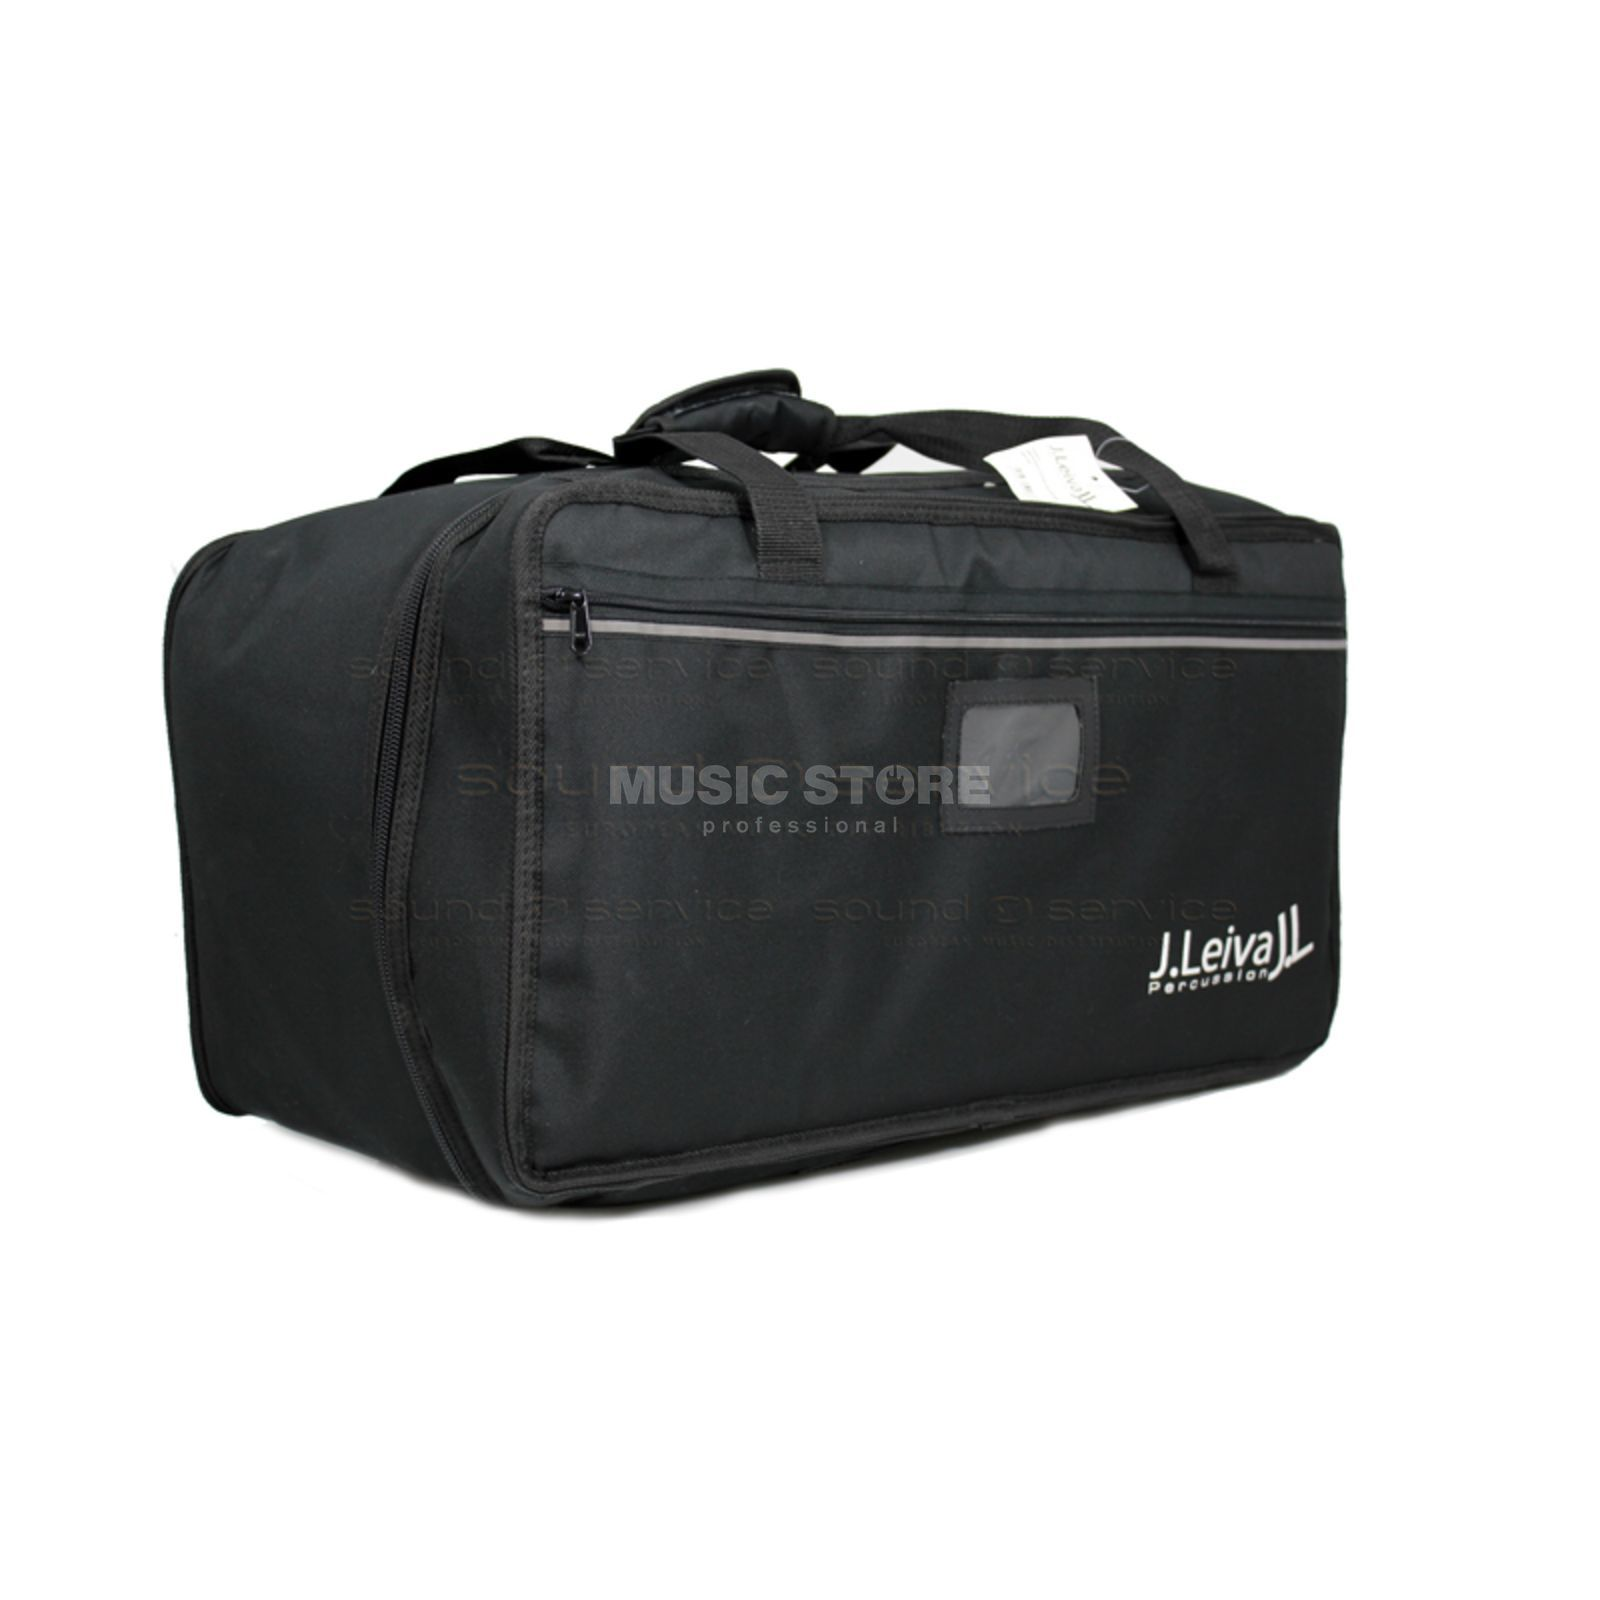 J.Leiva Percussion Cajon Bag Omeya Bass Studio  Produktbillede